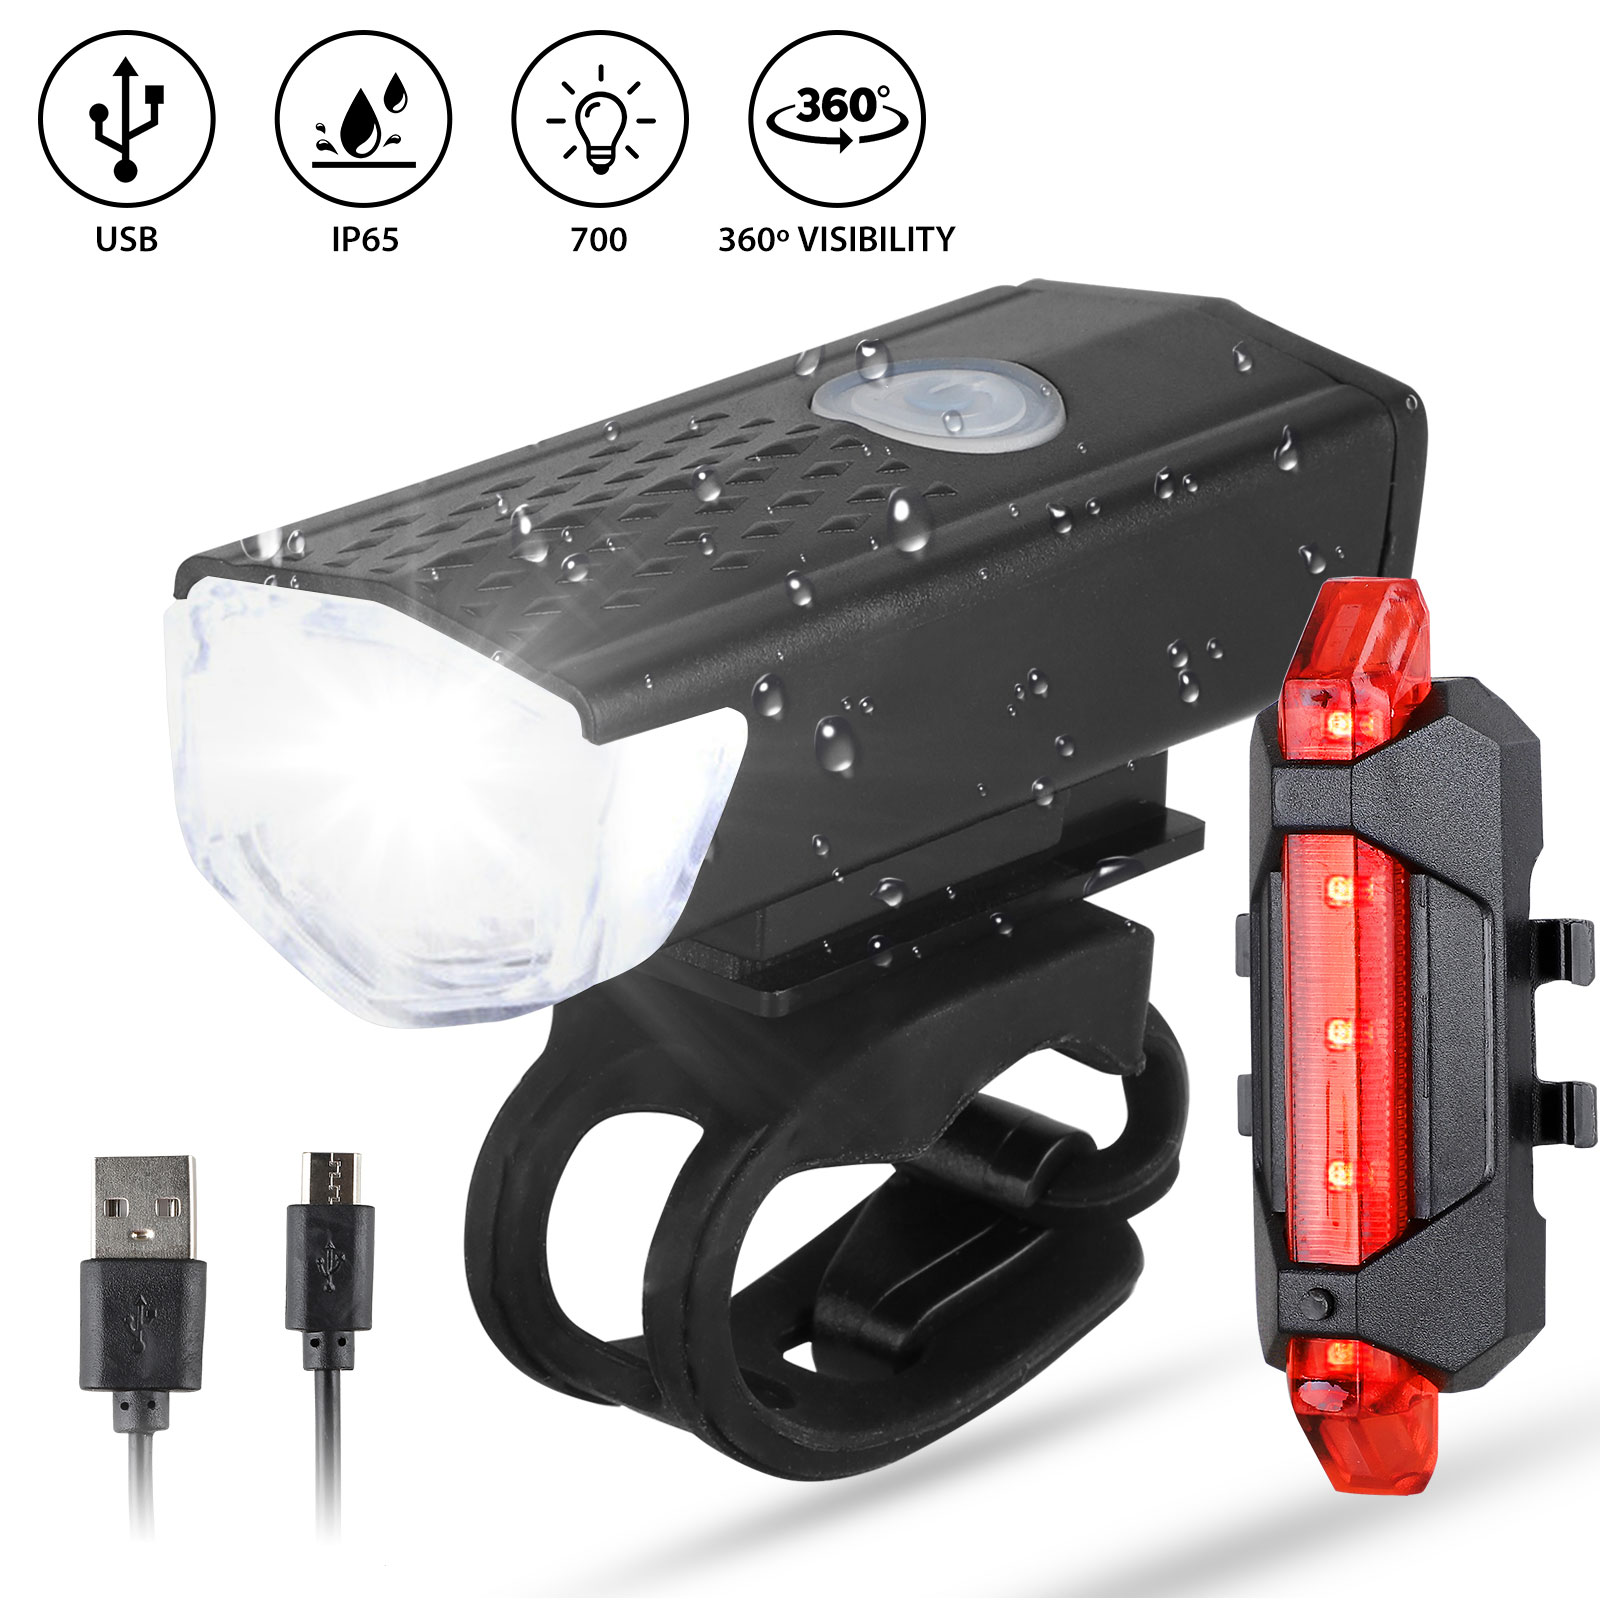 2X Rechargeable Bicycle Bike Headlight Rear Taillight USB LED Light Front Lamp